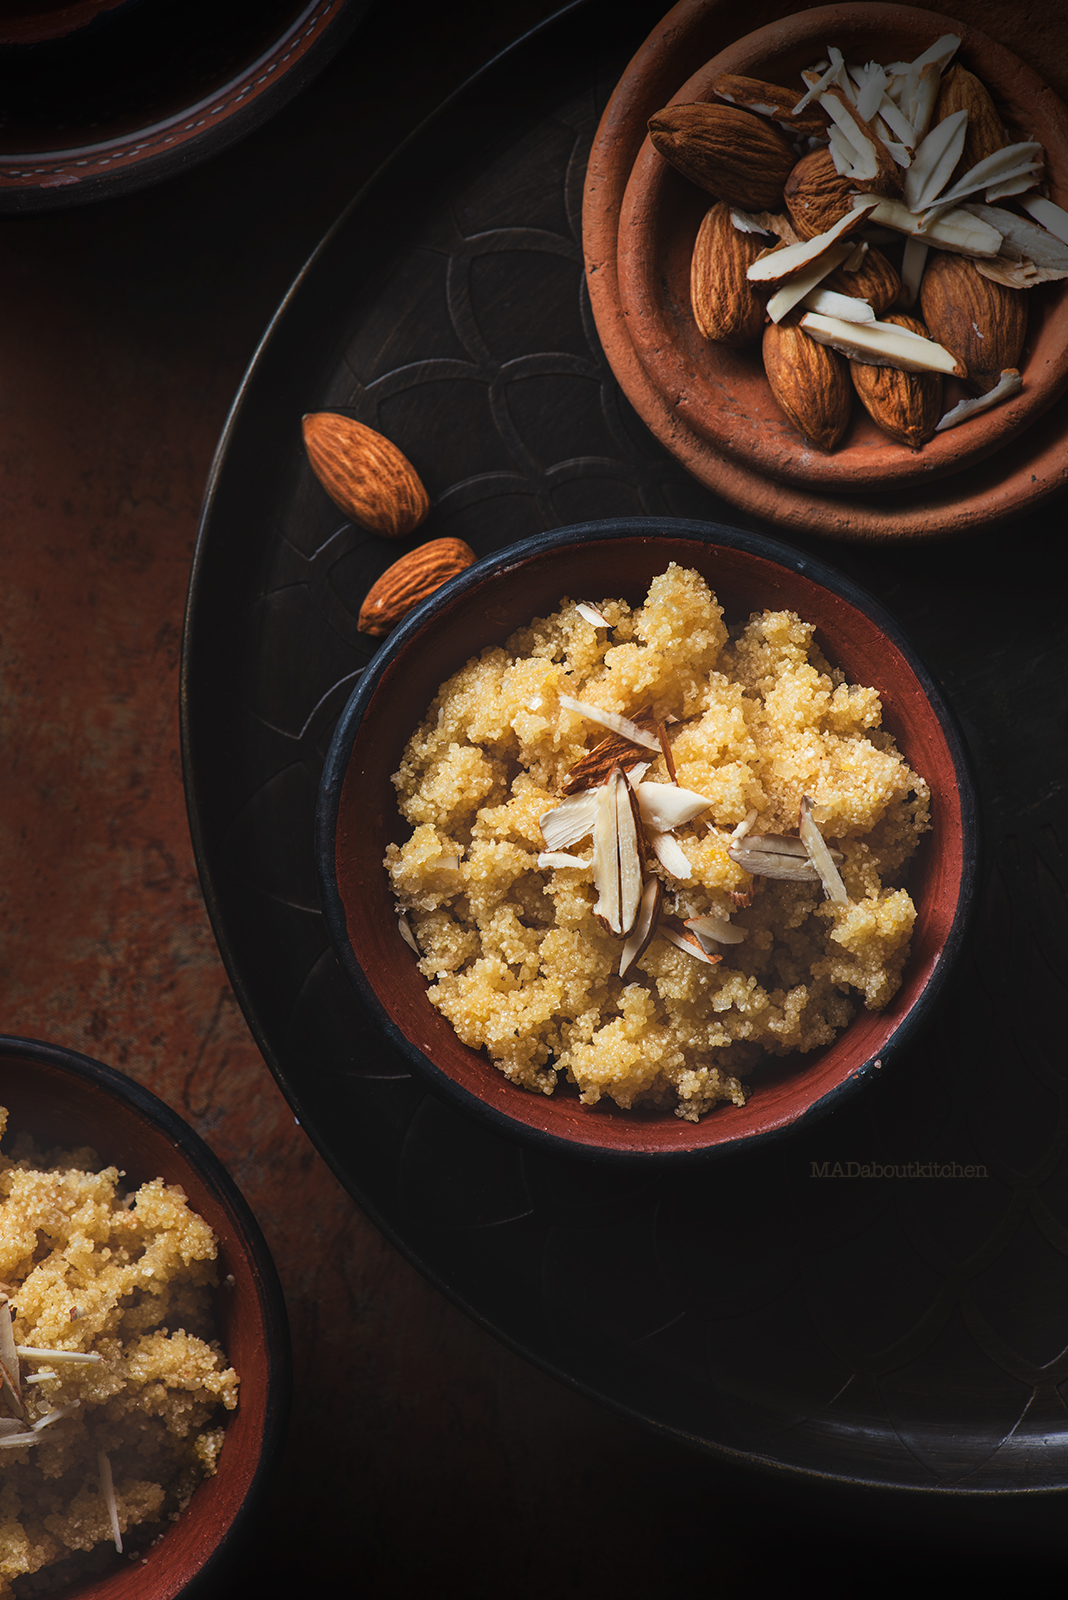 Sooji ka Halwa is the most common Indian desserts made using semolina that is quick to make & healthy too. This halwa is crunchy & crispy.